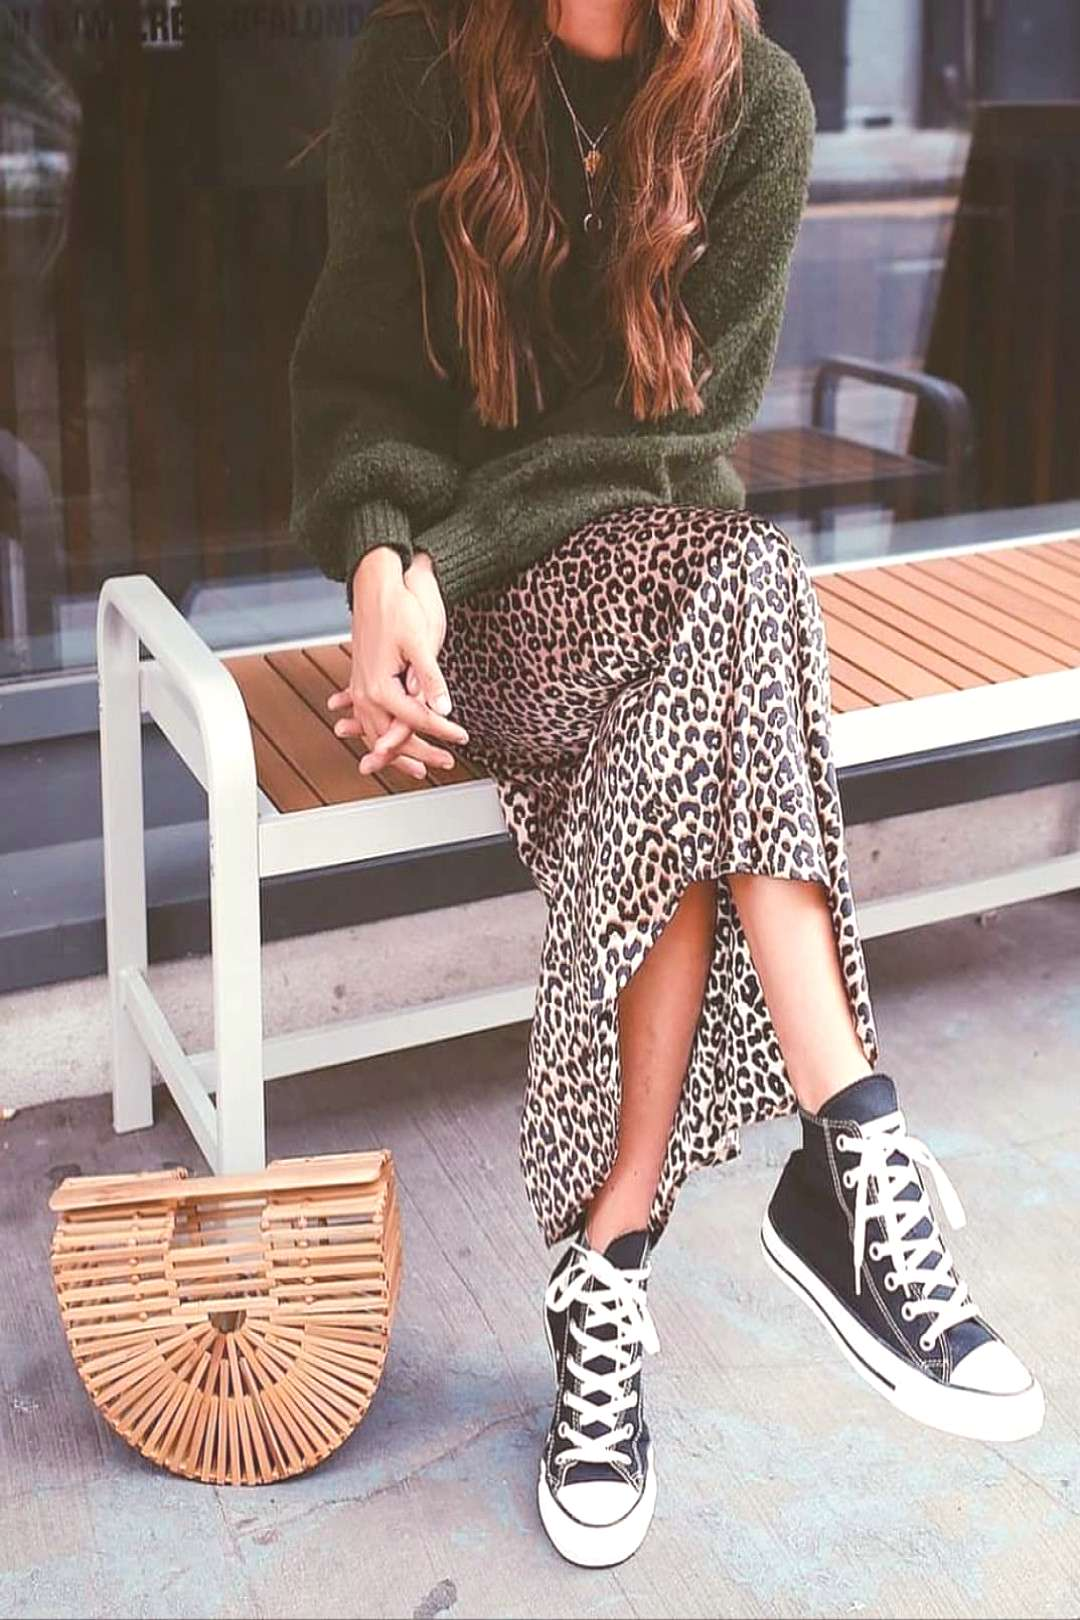 Outfit | Winter | Street style | Knitwear | Leopard skirt | All stars | Converse | Woven bag | Outf